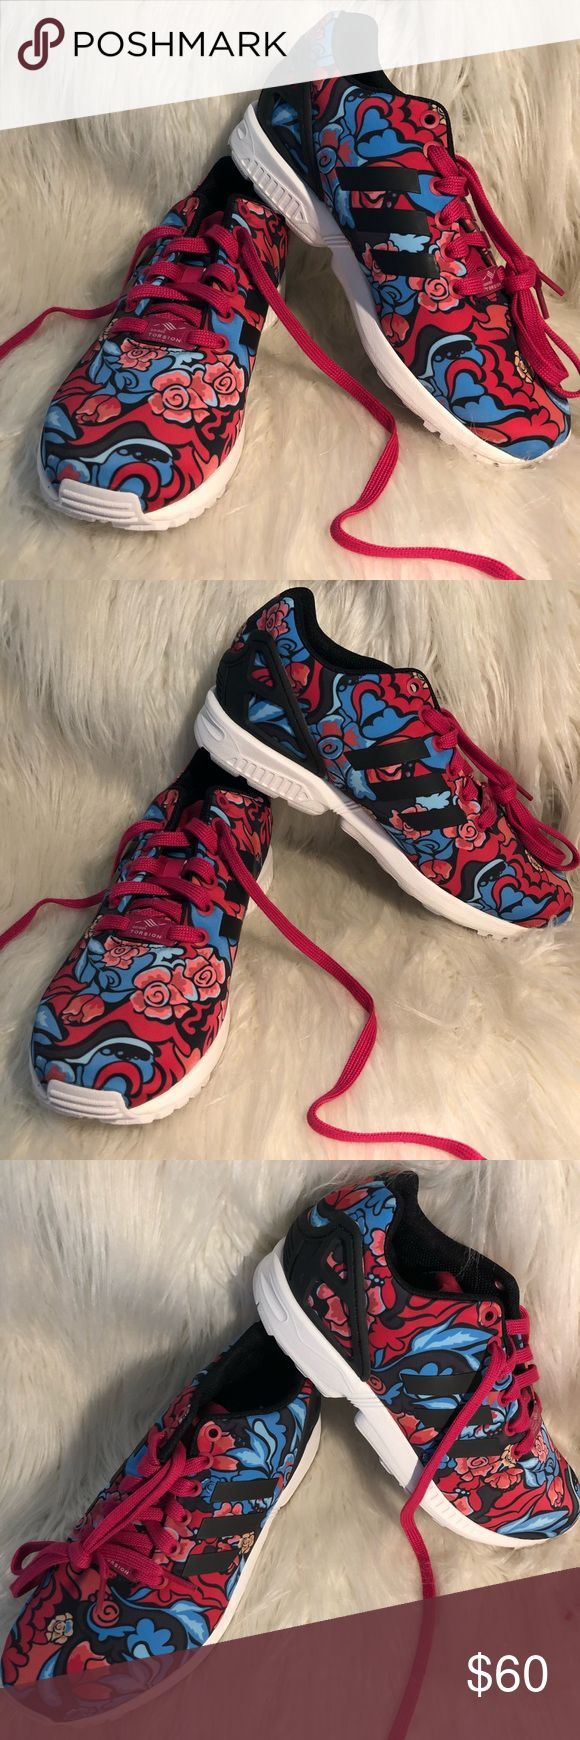 Adidas Torsion ZX Flux Floral Print New with tags adidas Shoes Athletic Shoes